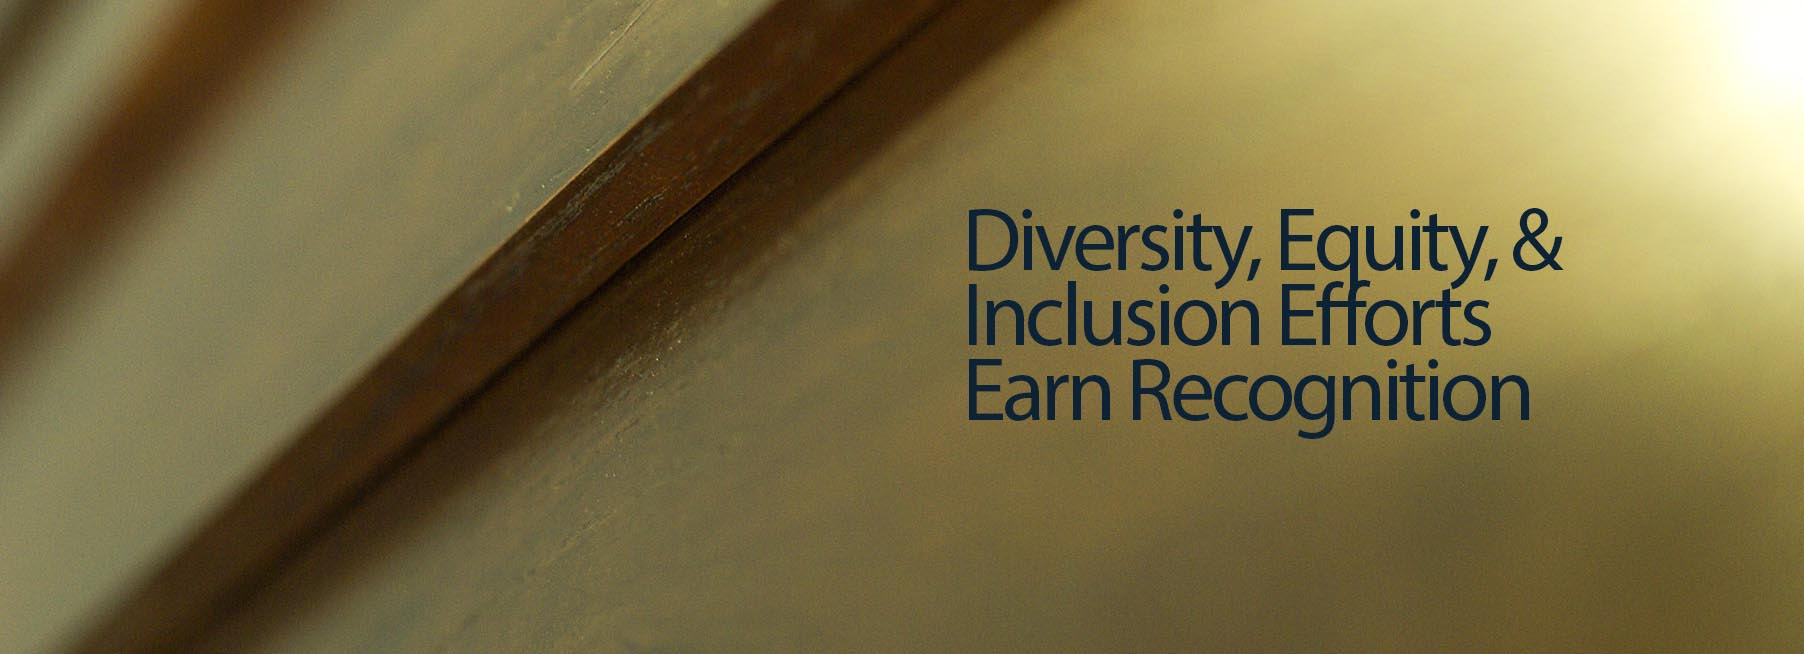 Diversity, Equity, & Inclusion Efforts Earn Recognition